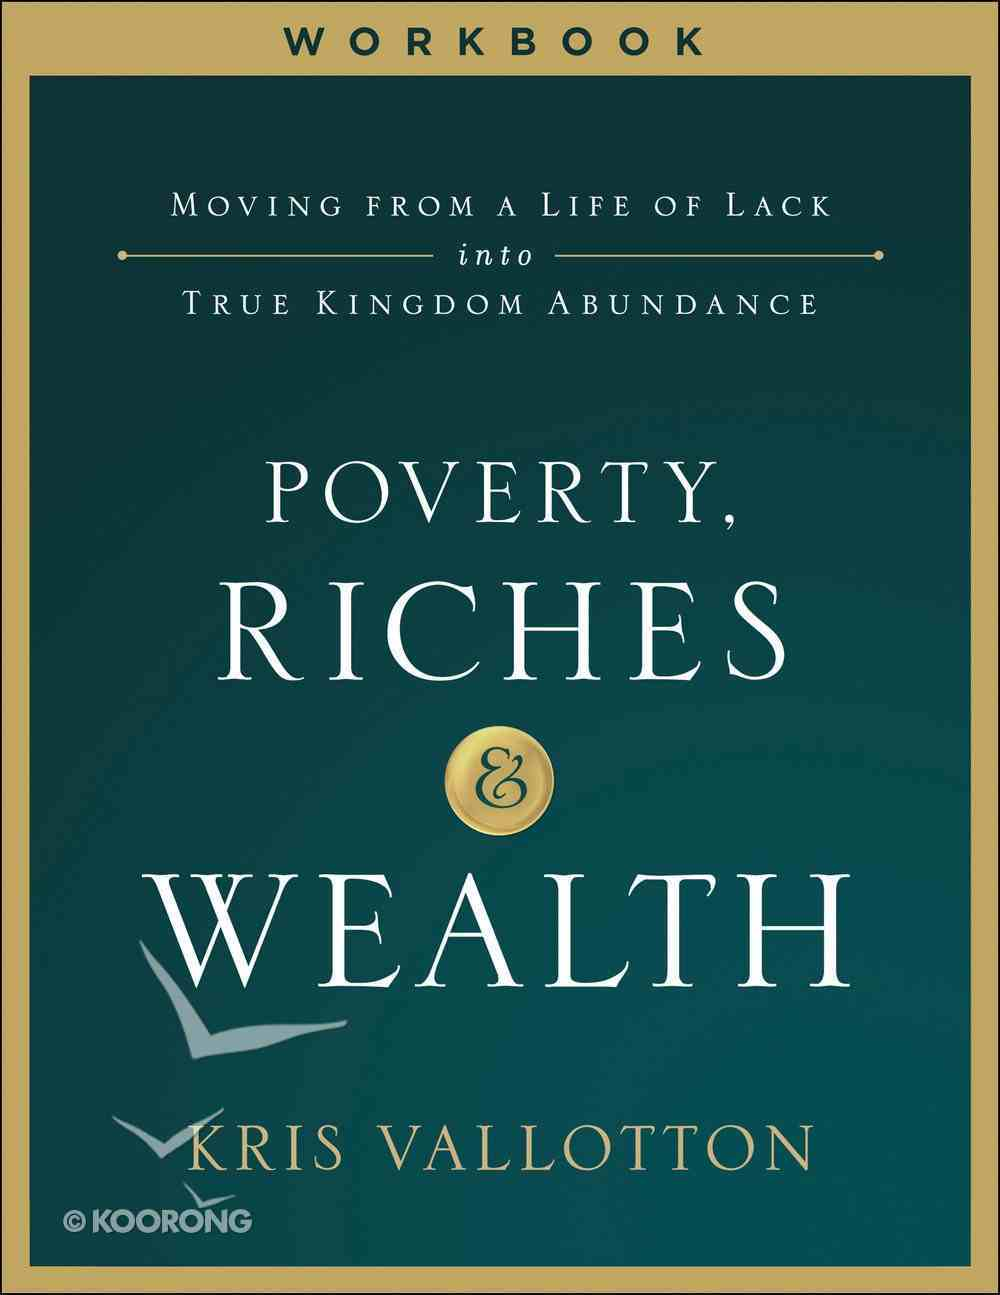 Poverty, Riches and Wealth: Moving From a Life of Lack Into True Kingdom Abundance (Workbook) Paperback